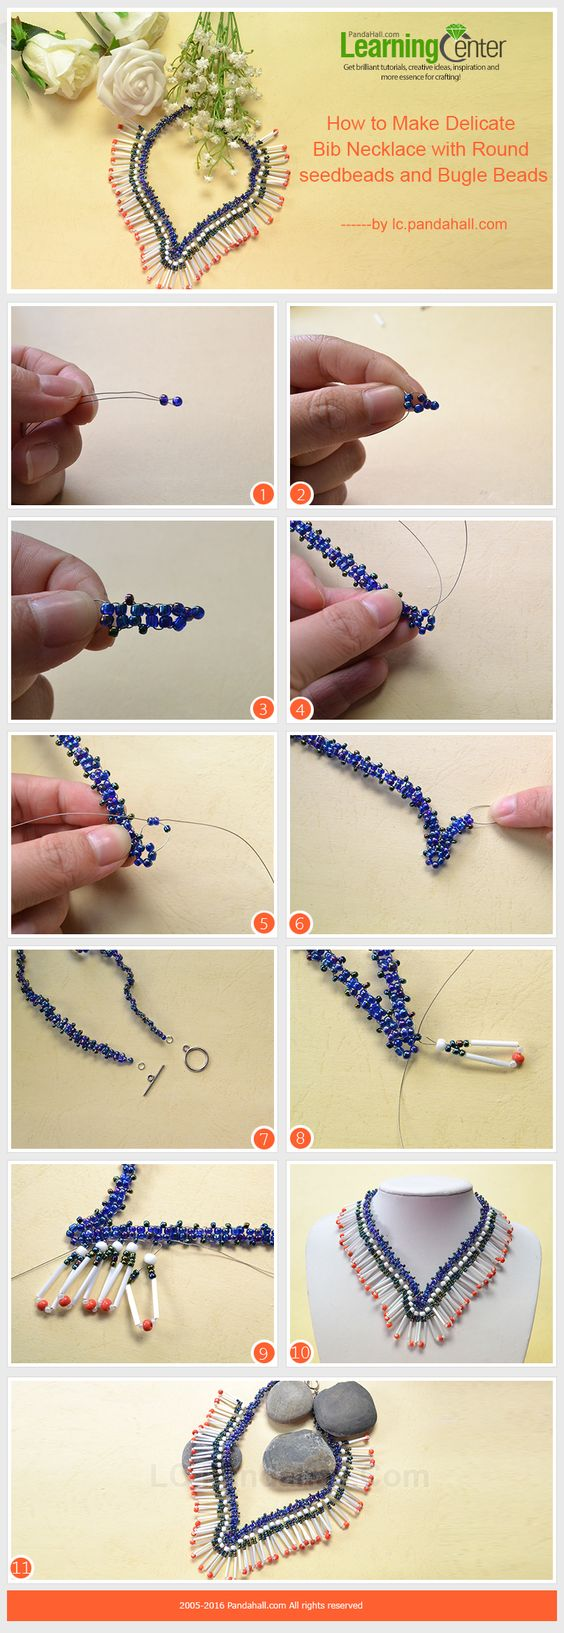 Tutorial on How to Make Delicate Bib Necklace with Round seed beads and Bugle Beads from LC.Pandahall.com #pandahall